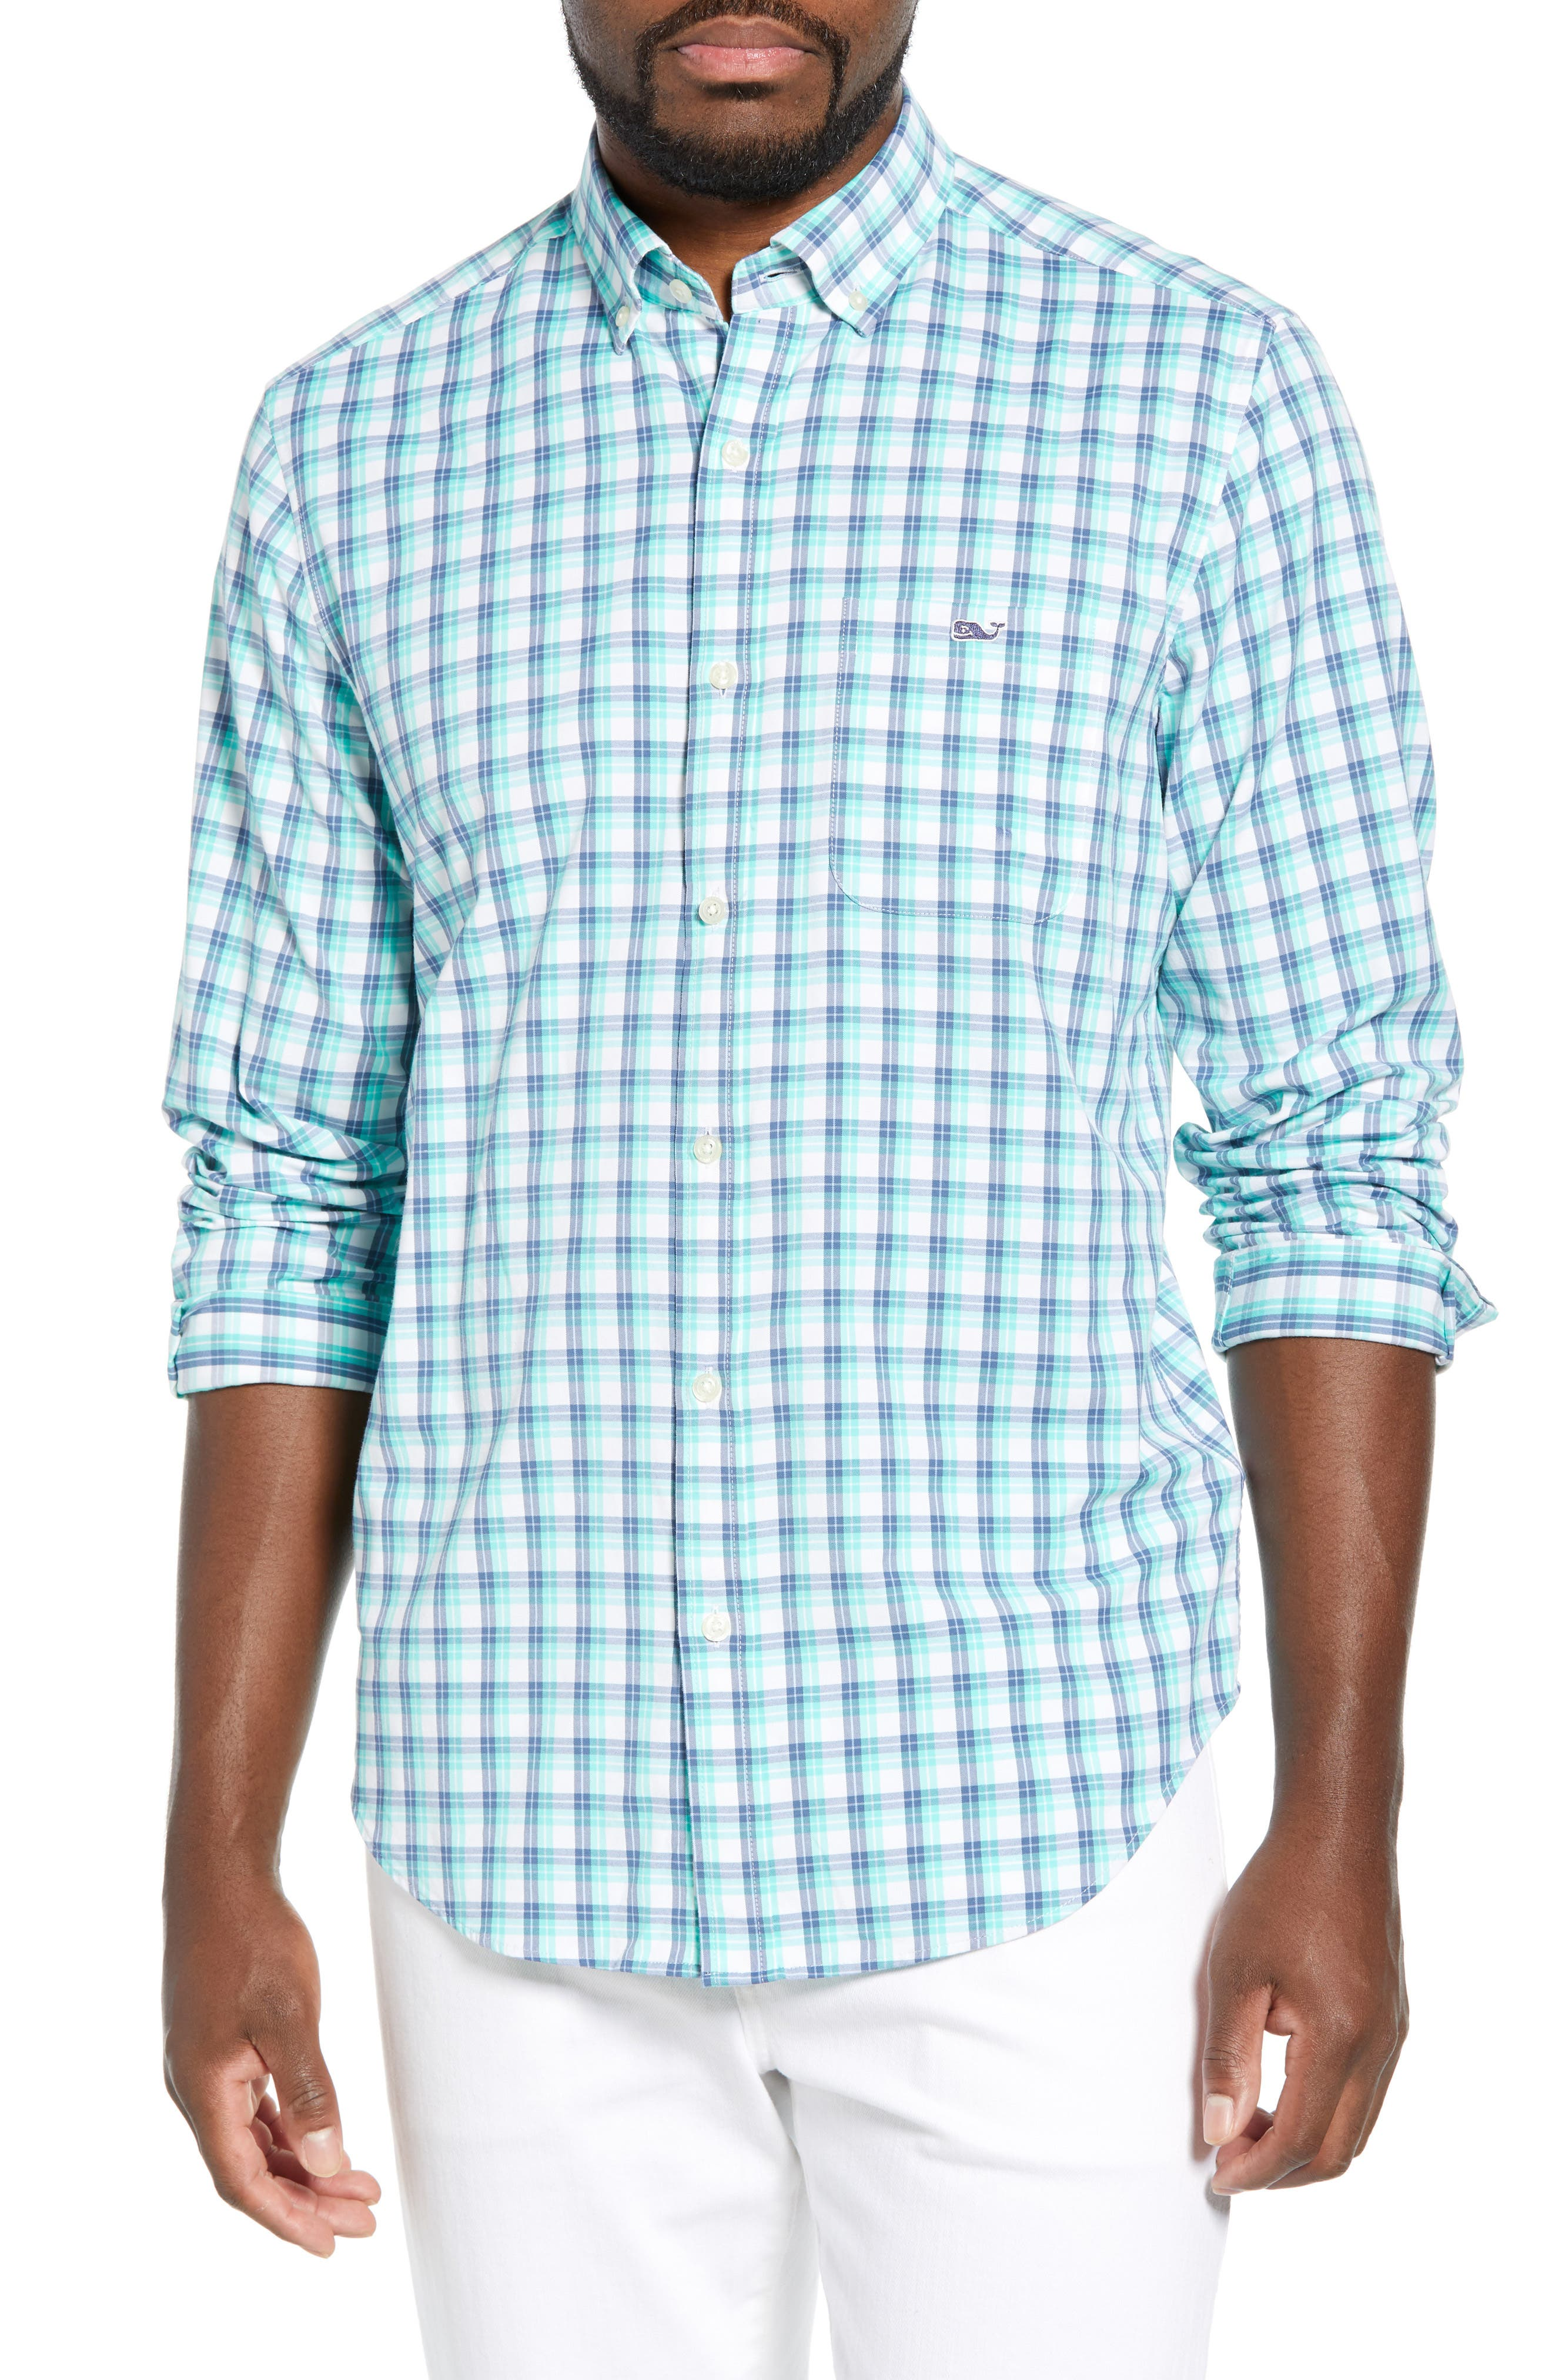 VINEYARD VINES South Street Tucker Slim Fit Sport Shirt, Main, color, CAPRI BLUE